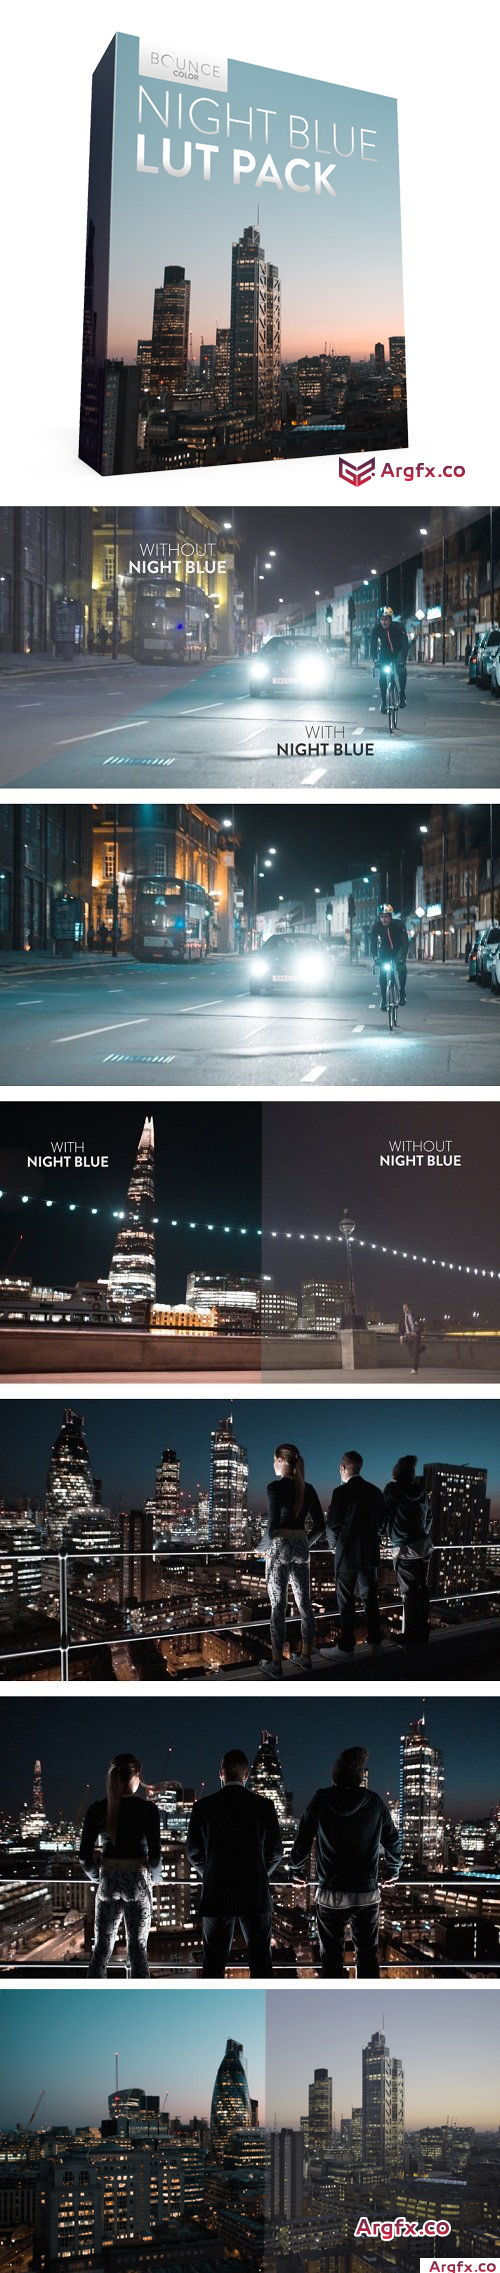 Bounce Color - NIGHT BLUE LUT Pack